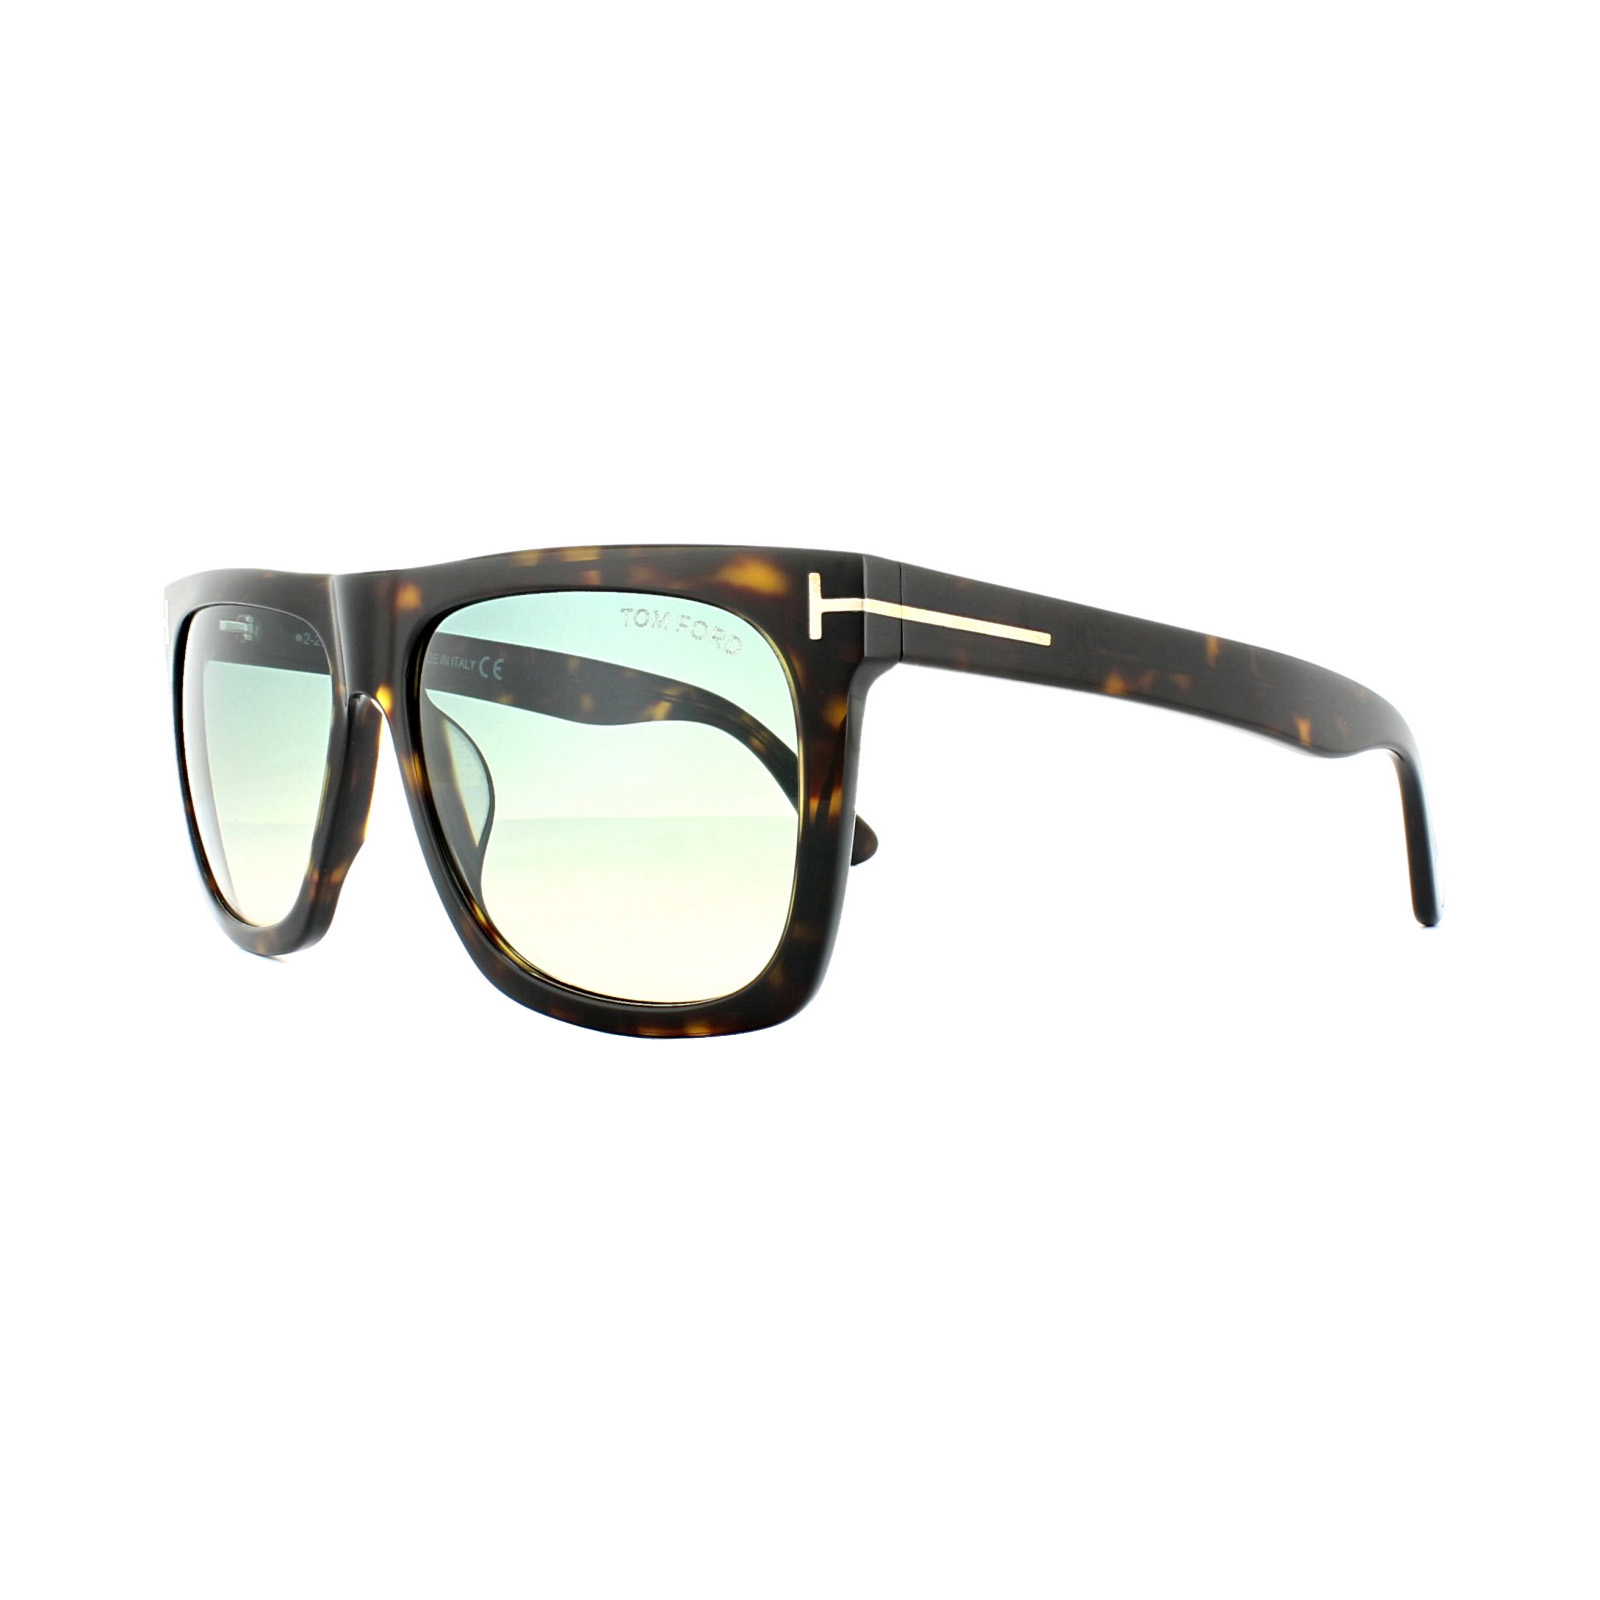 Tom Ford Sonnenbrille »Morgan FT0513«, braun, 52W - braun/blau